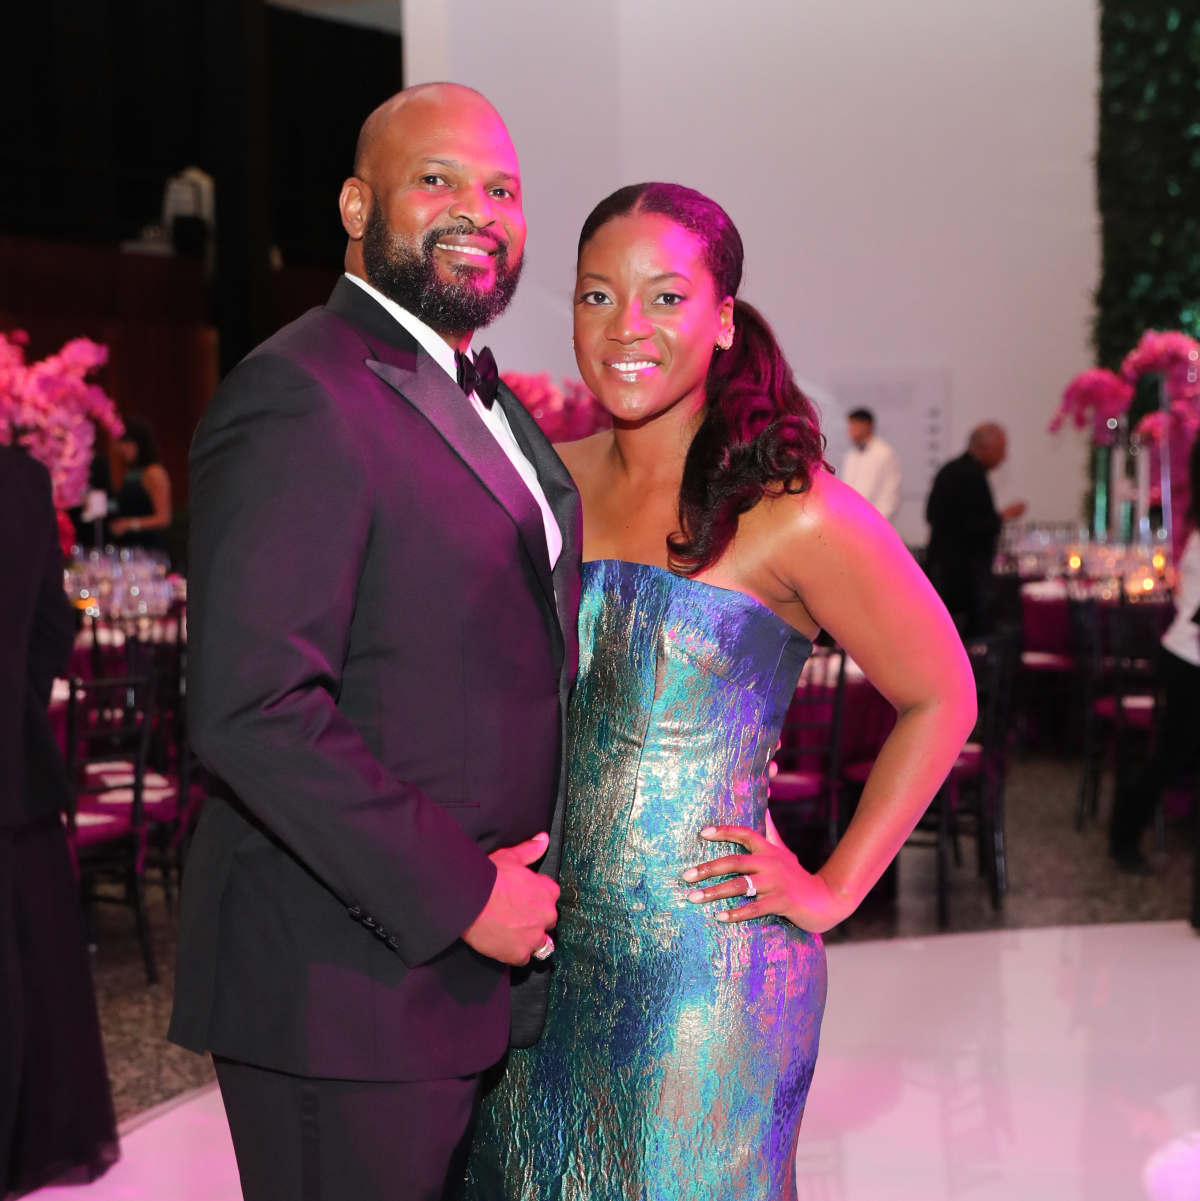 Martin Scruggs and Sahadat Kemi Nurudeen at Museum of Fine Arts Gala